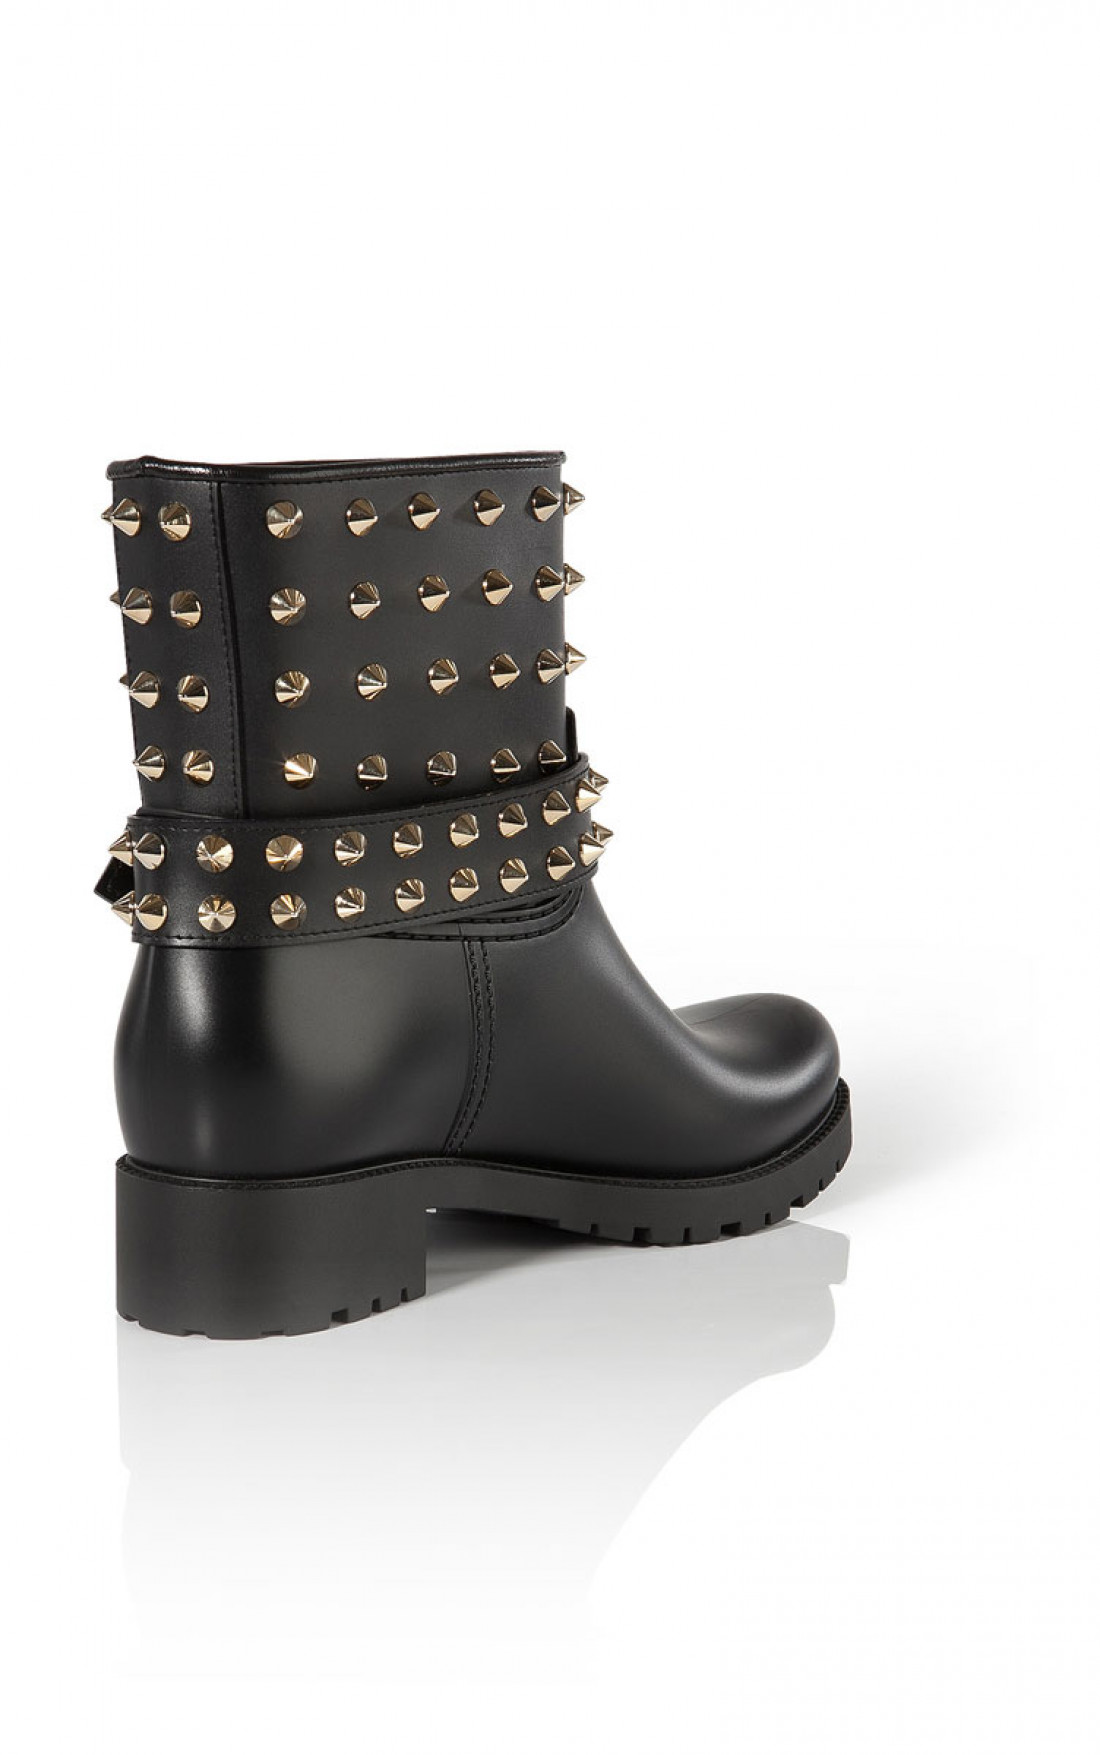 Philipp Plein - 'Miami' Rubber Shoes Black Back 45 (FW14-SW014078)